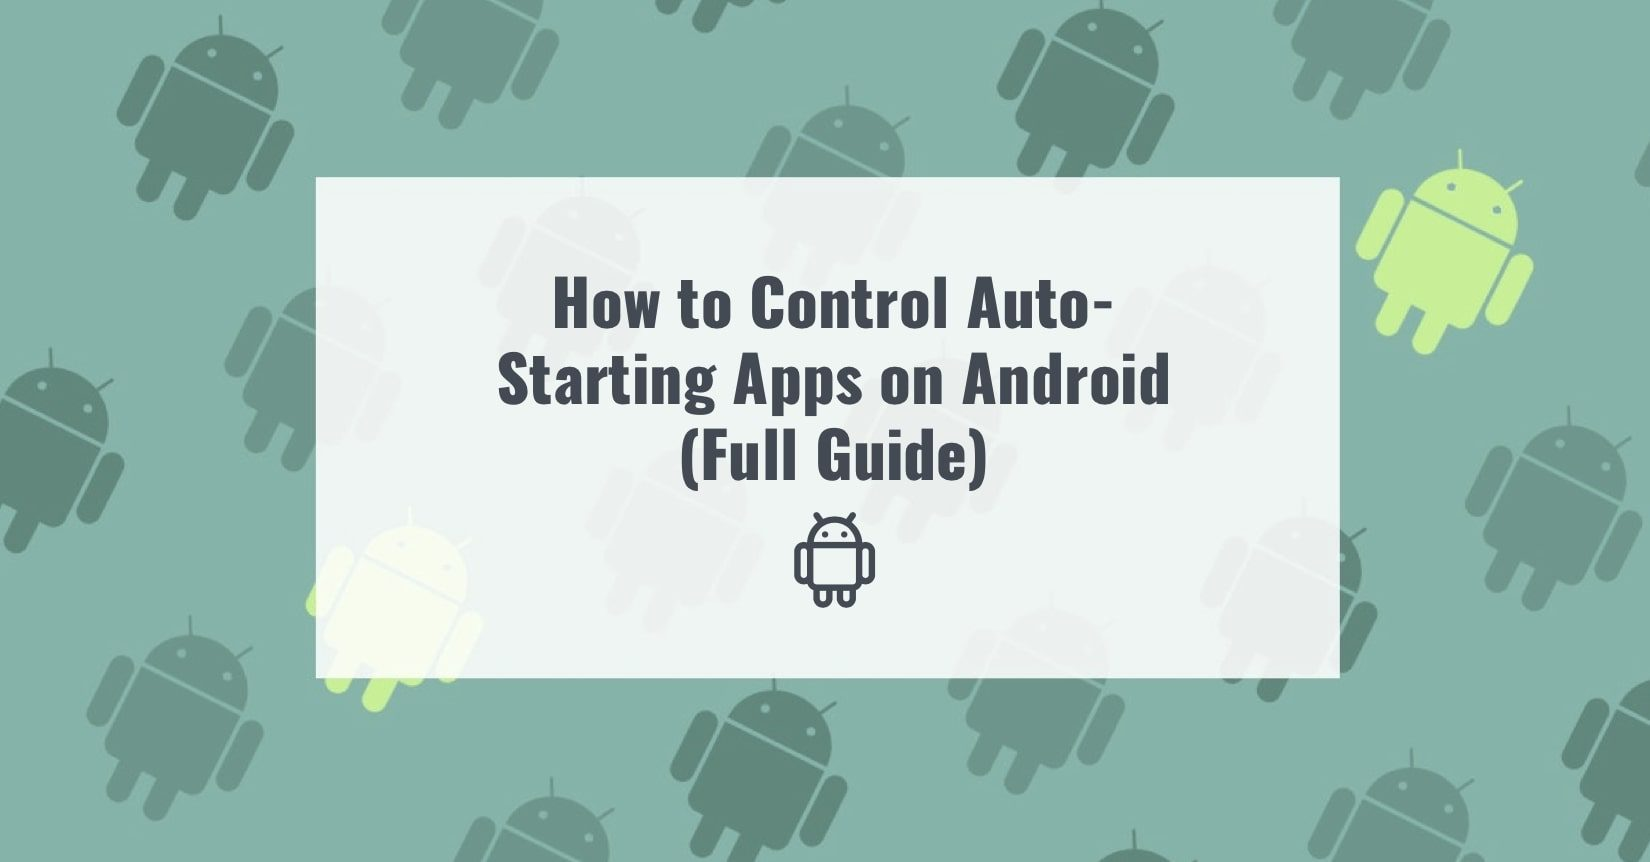 How to Control Auto-Starting Apps on Android (Full Guide)